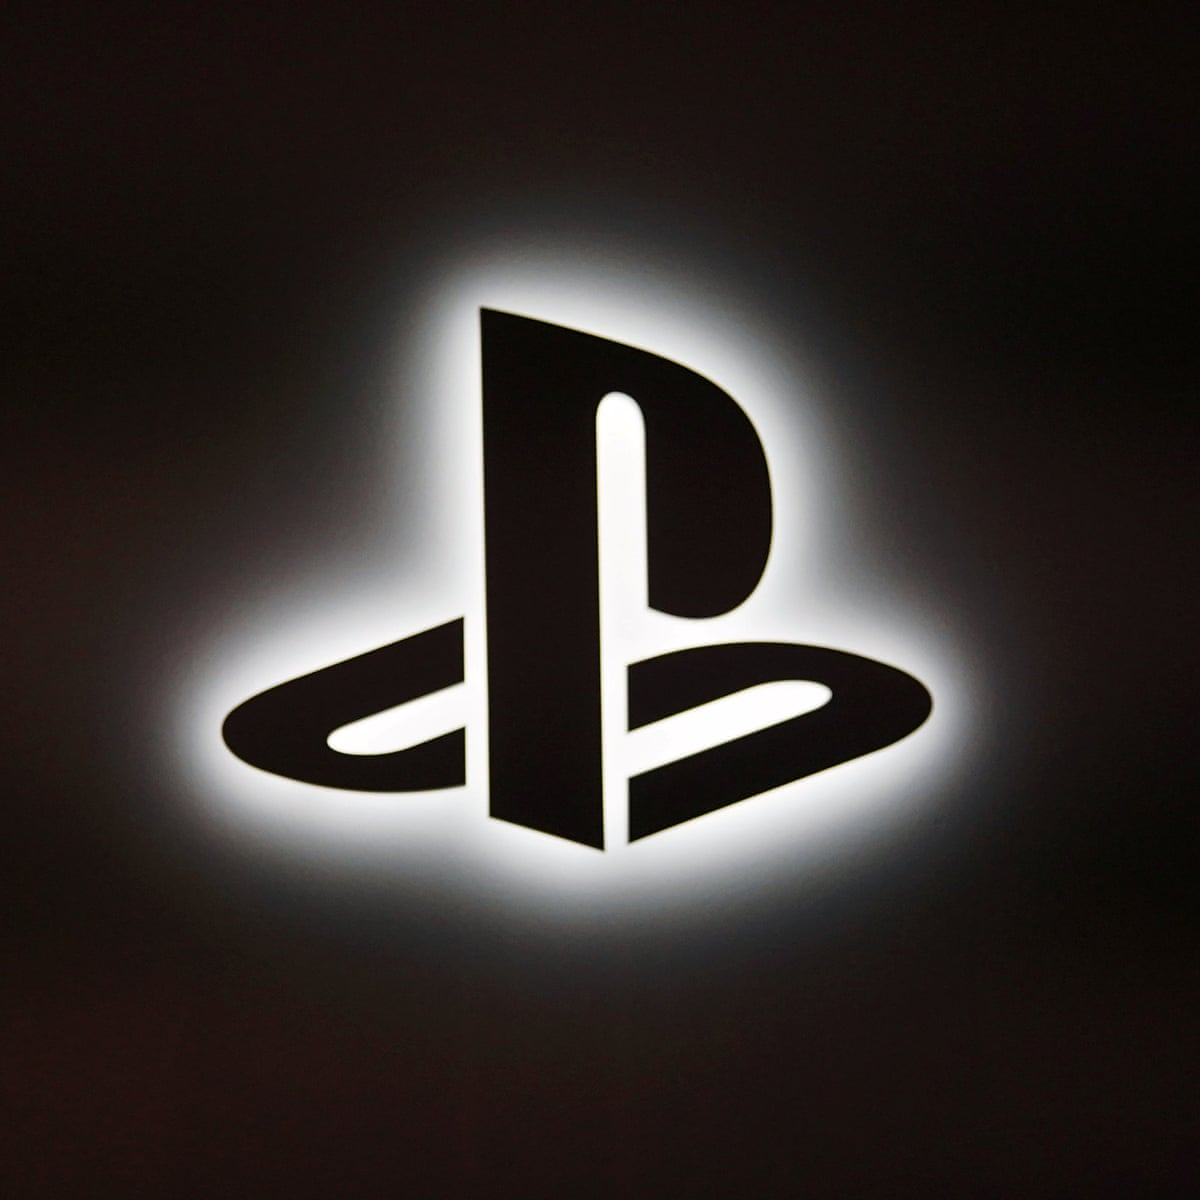 PlayStation 5: Sony gives the first details of its next generation console  | Games | The Guardian